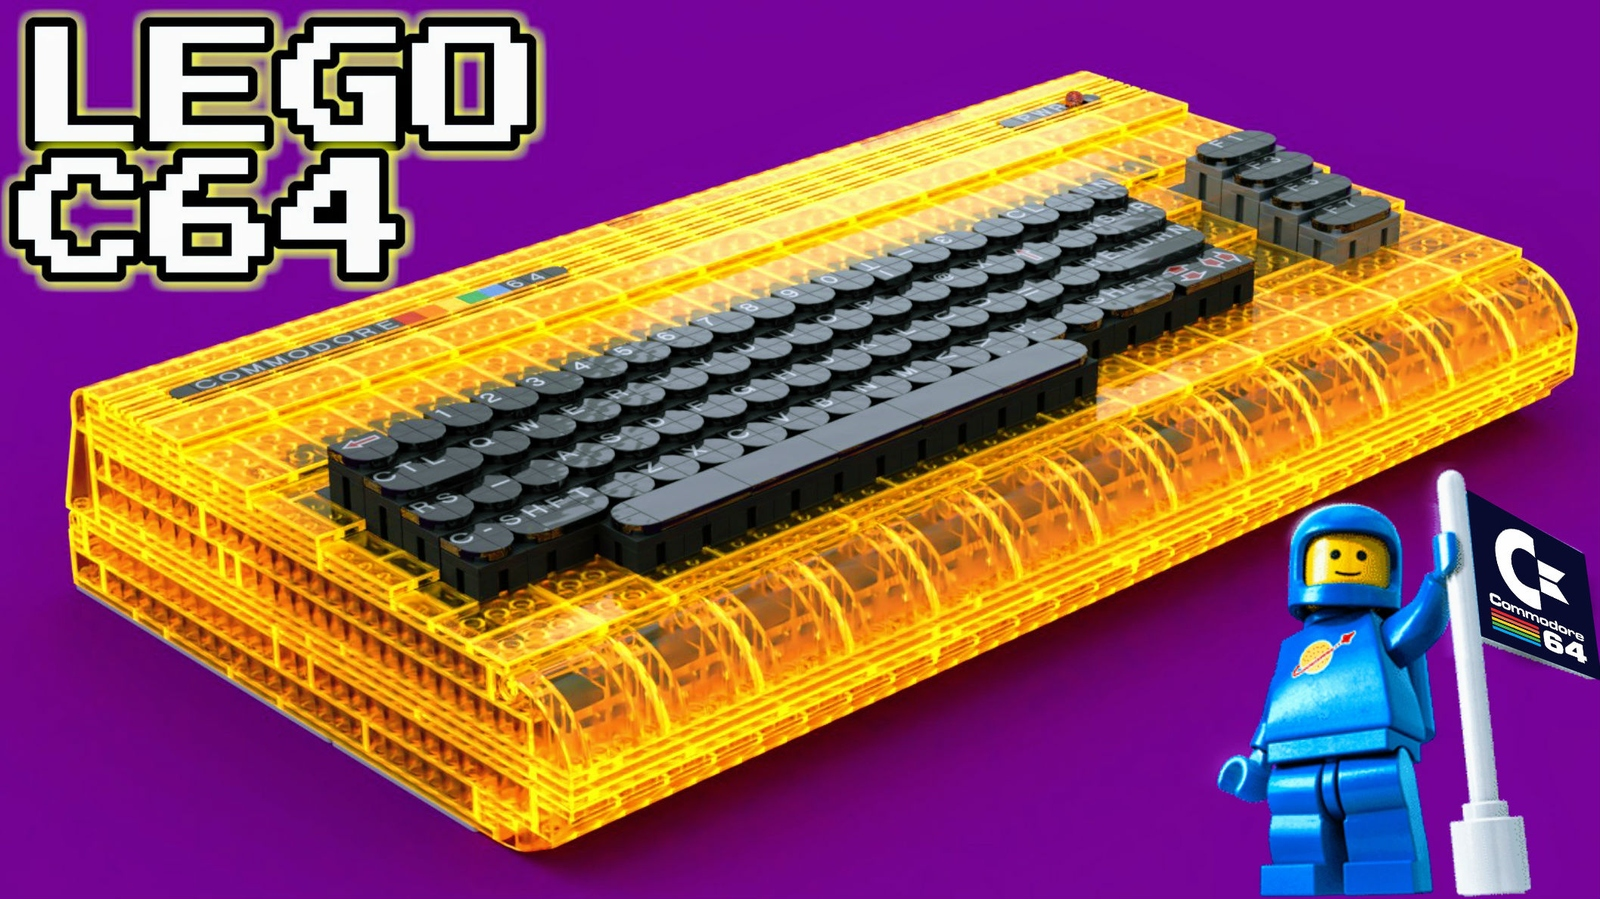 LEGO IDEAS - Product Ideas - Full-Size Working Commodore 64